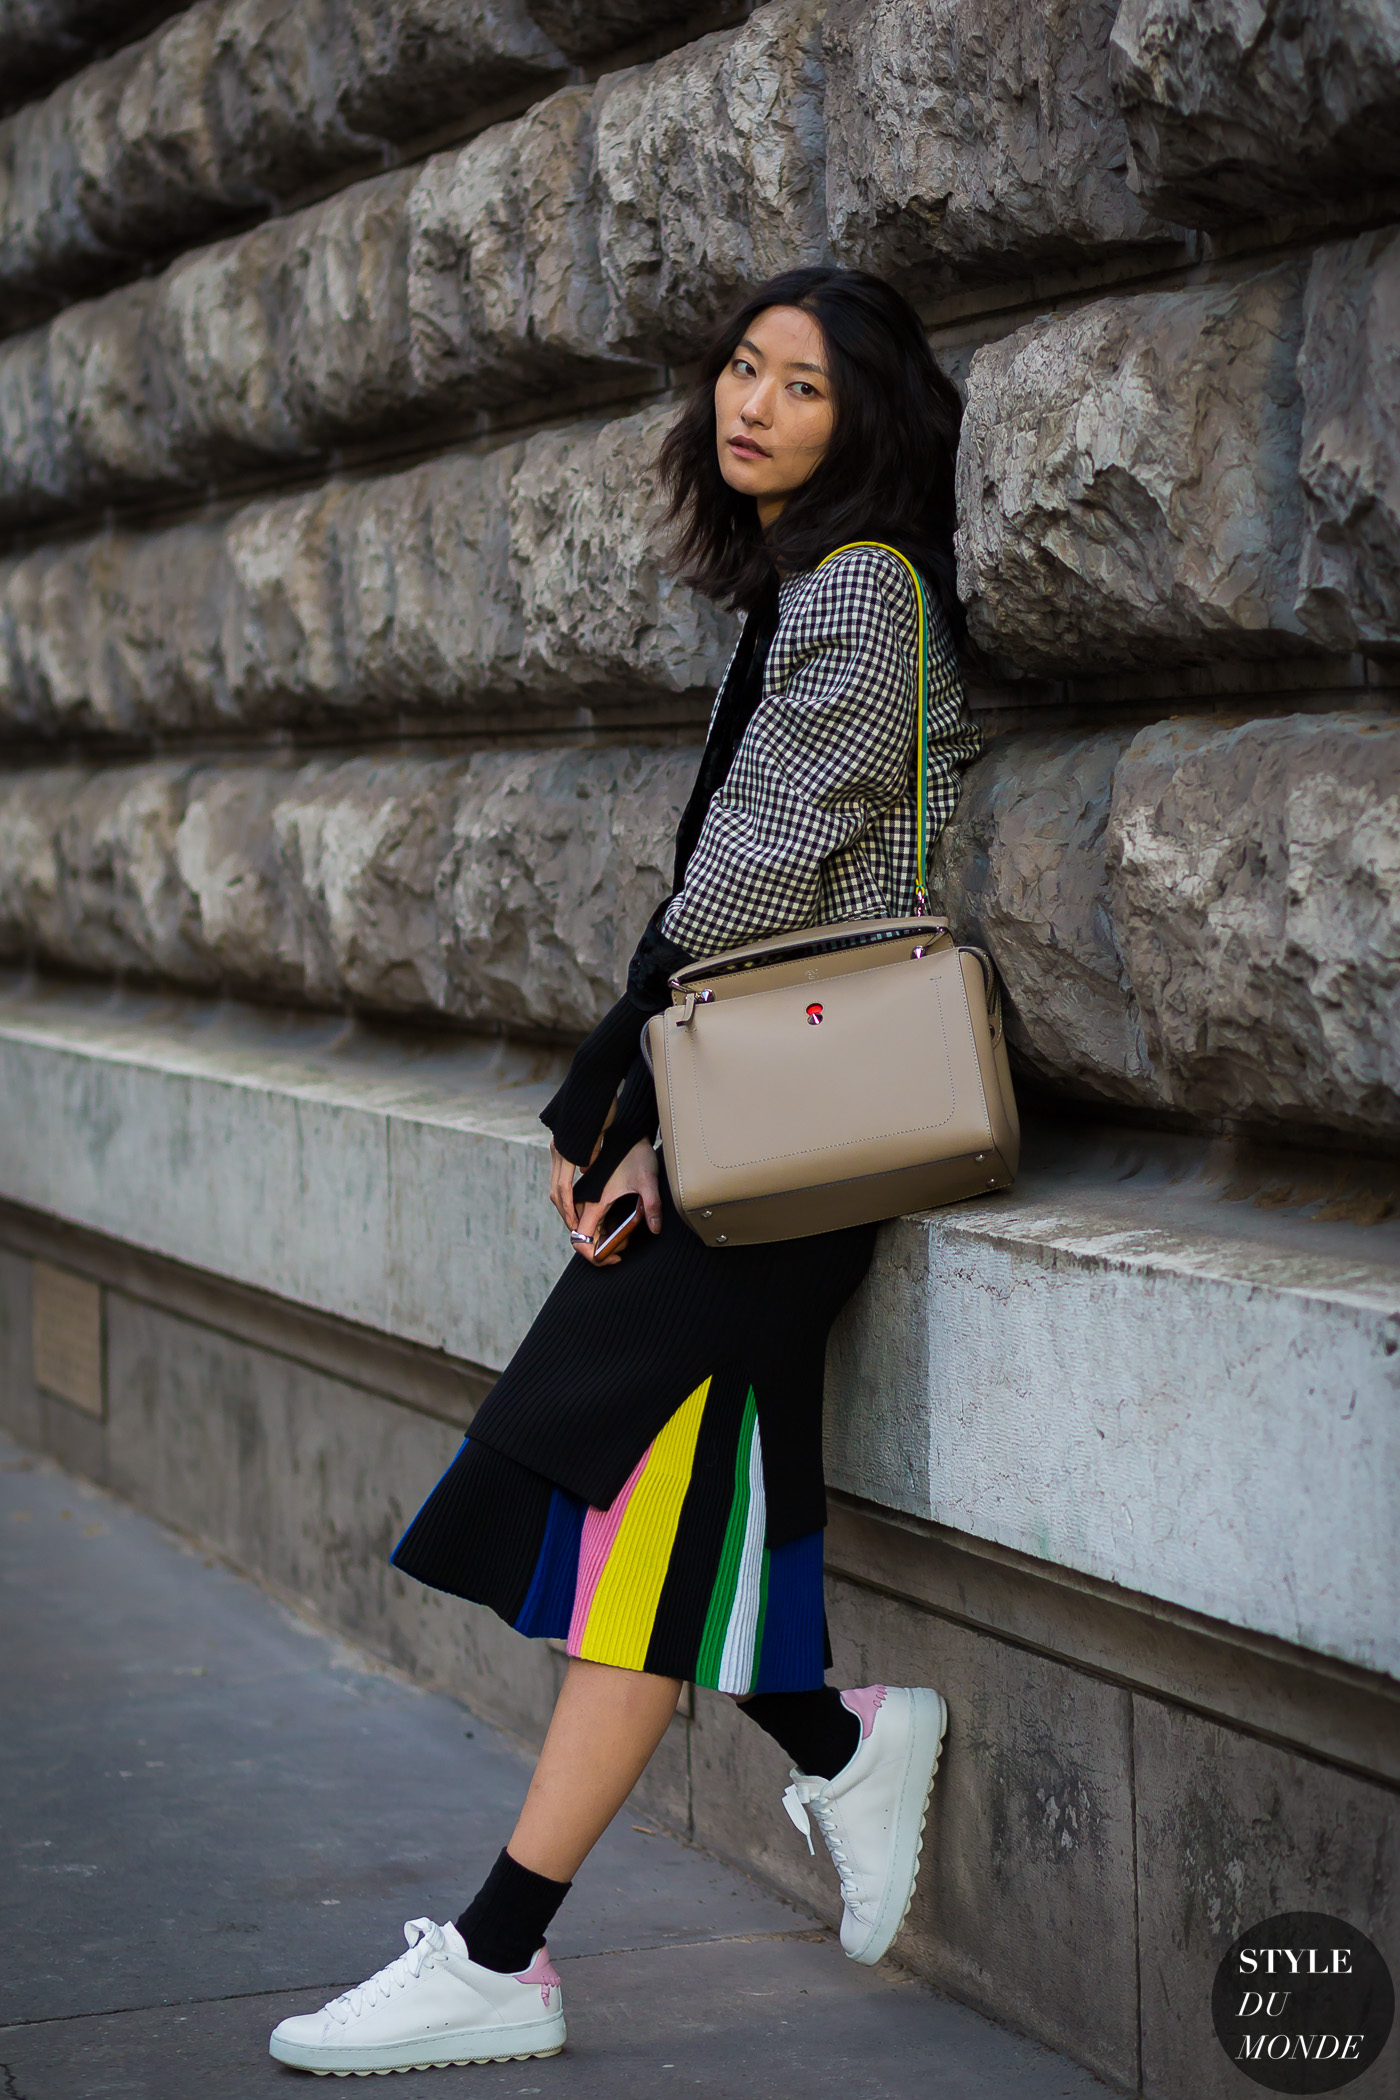 Jihye Park Street Style Street Fashion Streetsnaps by STYLEDUMONDE Street Style Fashion Photography